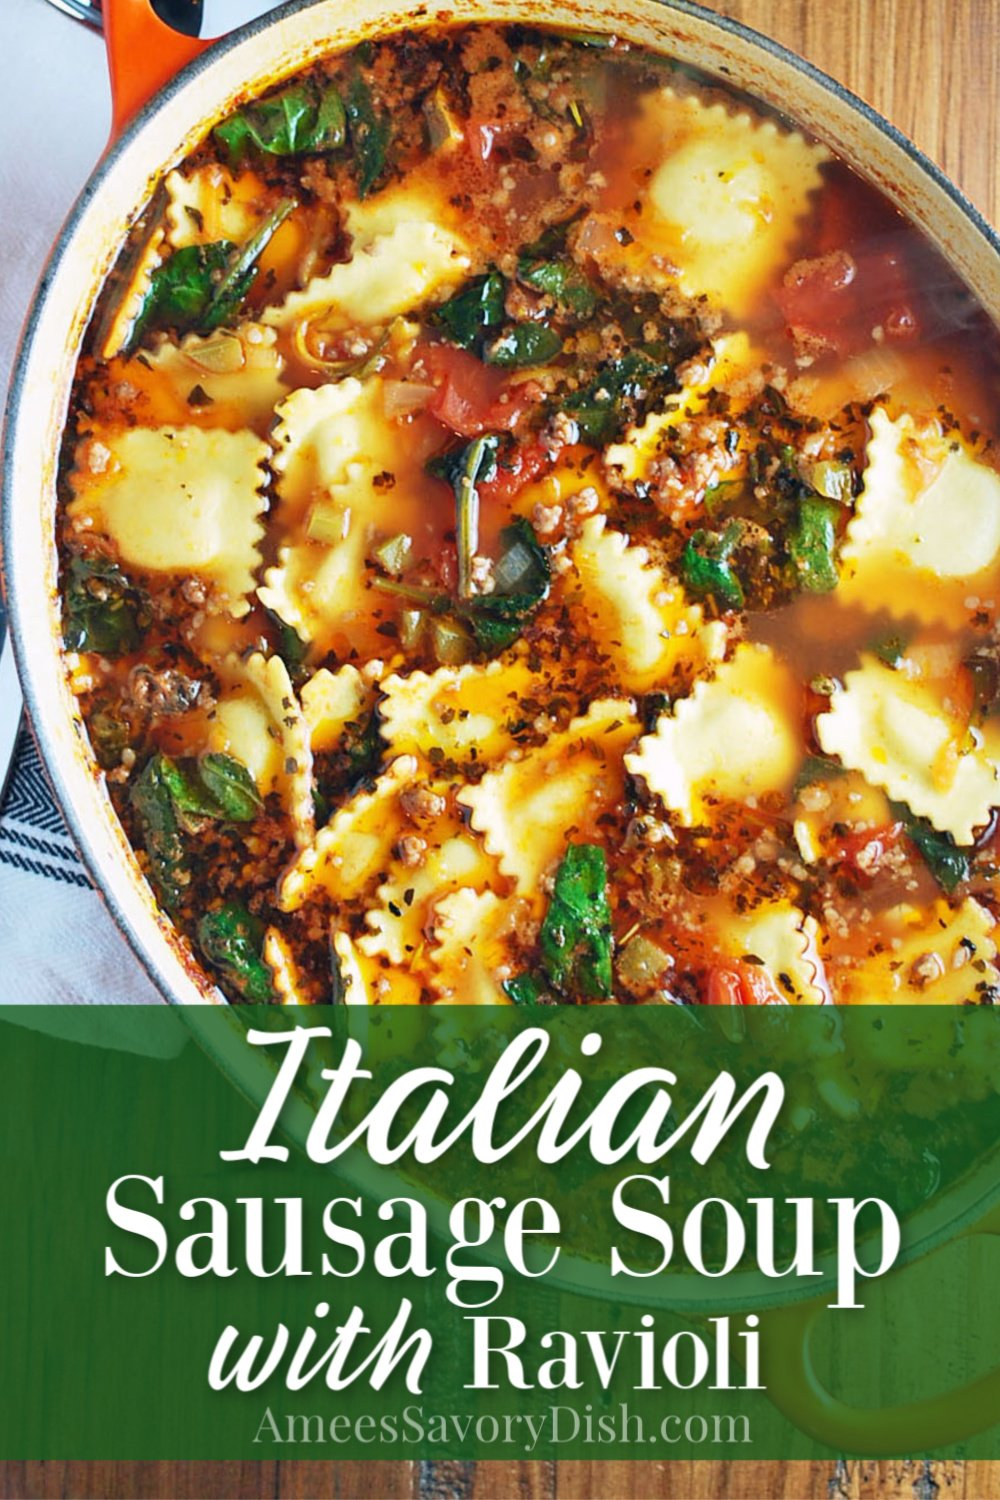 A hearty and delicious recipe for Italian Sausage Soup made with Italian sausage, fresh ravioli pasta, vegetables, and seasonings. I always have requests for this recipe when I serve it! #italiansausagesoup #italiansoup #souprecipe #pastasoup via @Ameessavorydish